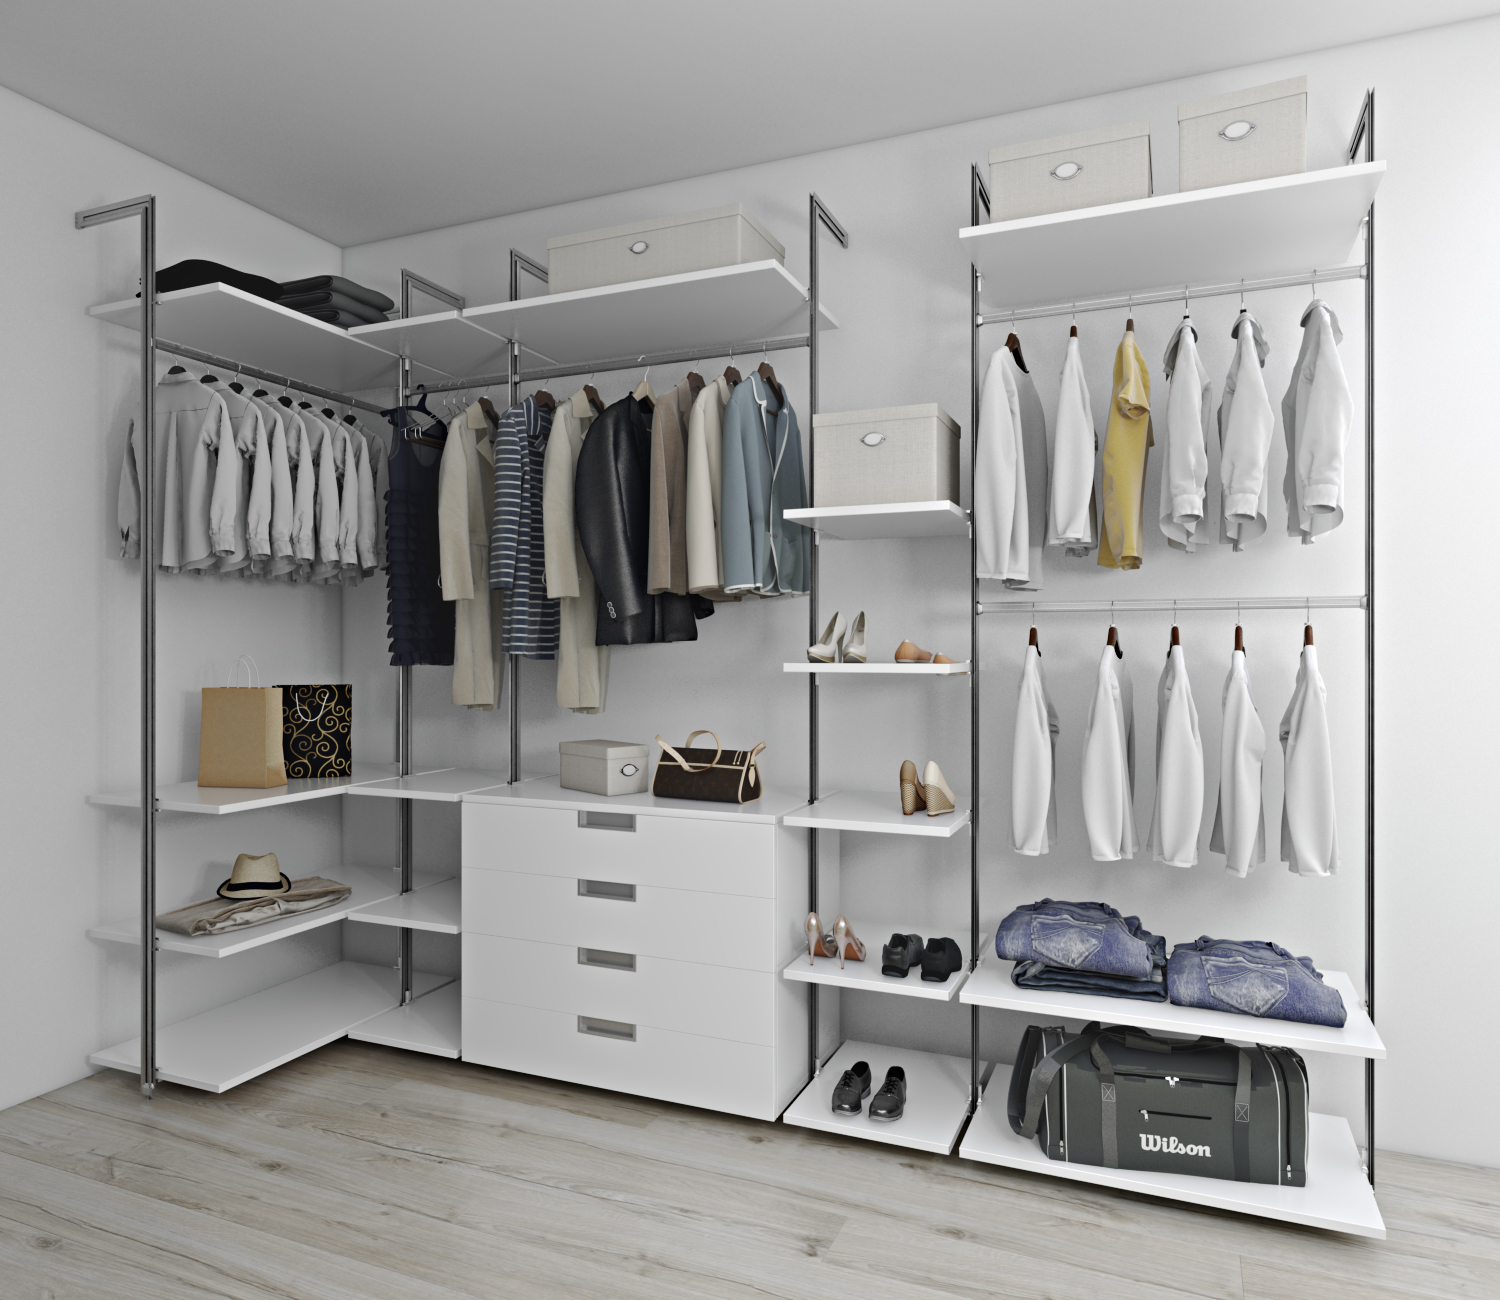 After-cupboard